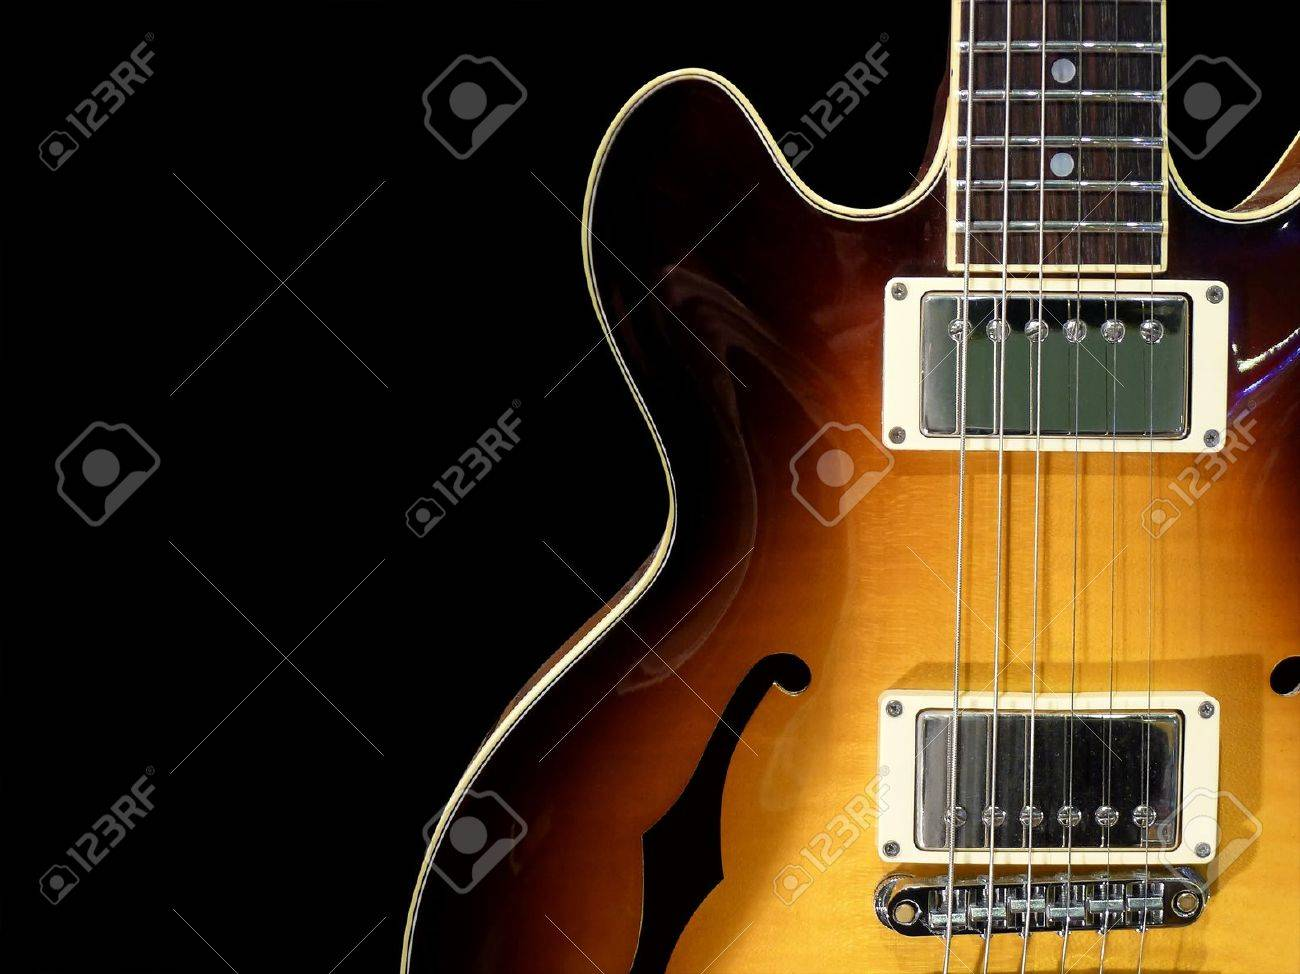 Close Up Of Vintage Electric Jazz Guitar On Black Background Stock